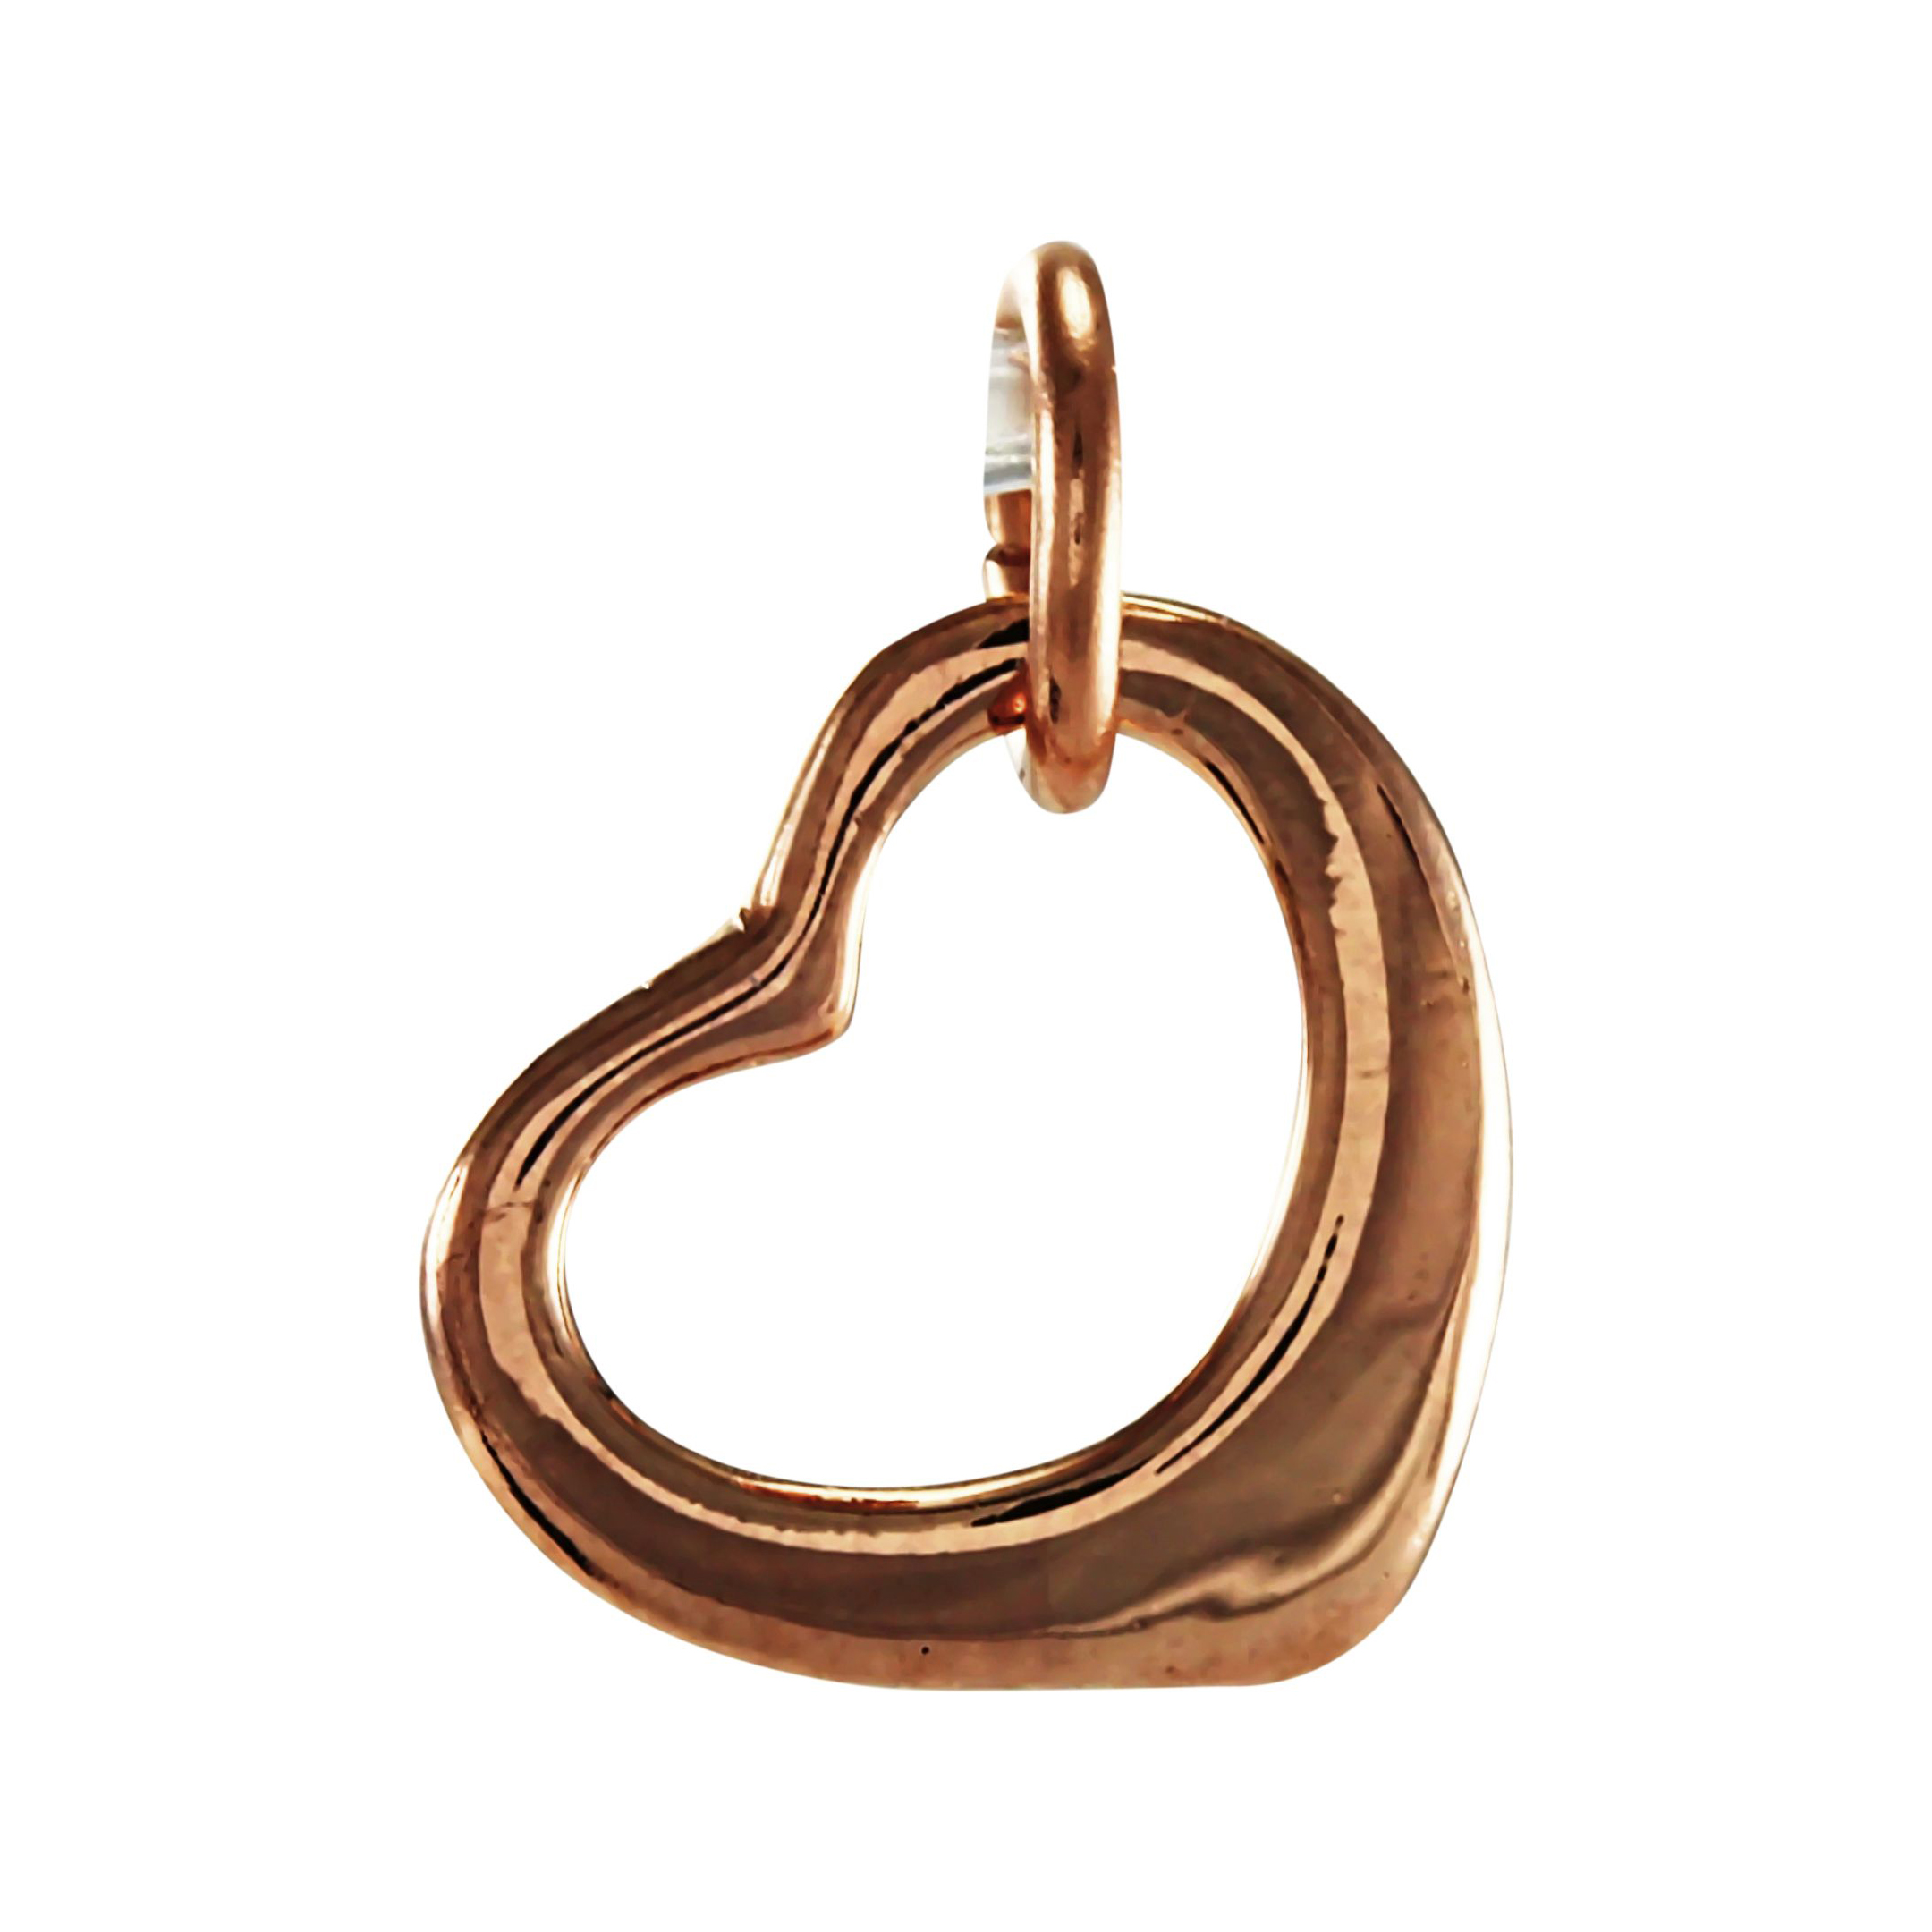 An image of 9ct Rose Gold Floating Heart Charm